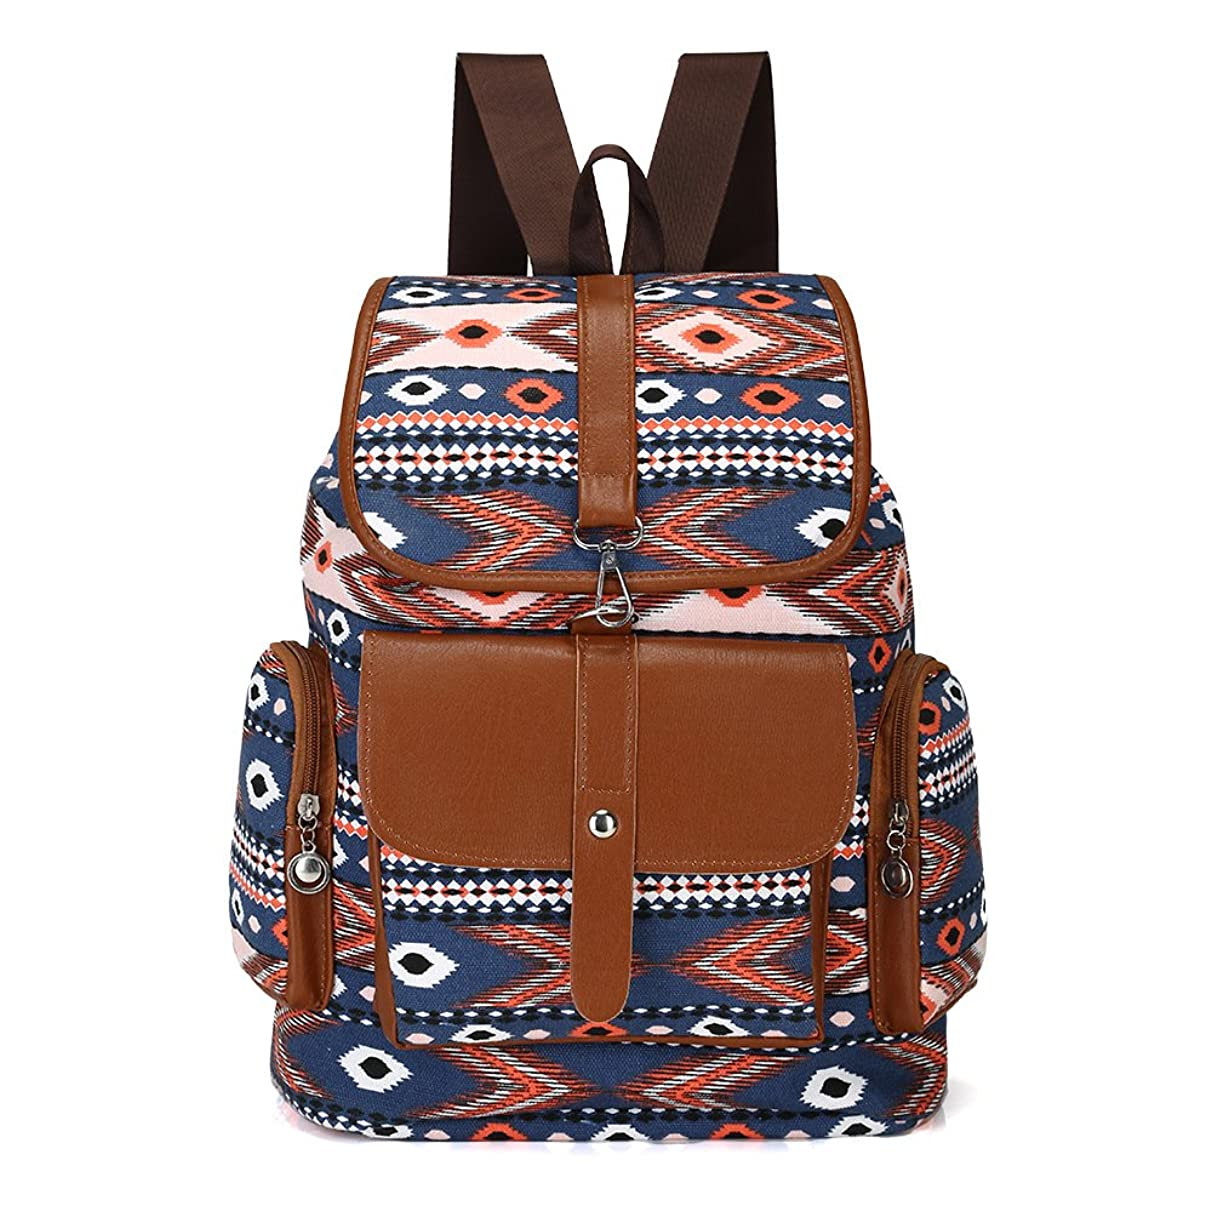 MMTC Fashion Sail Ladies Backpack, Simple Women's Canvas Shoulder Bag Tide